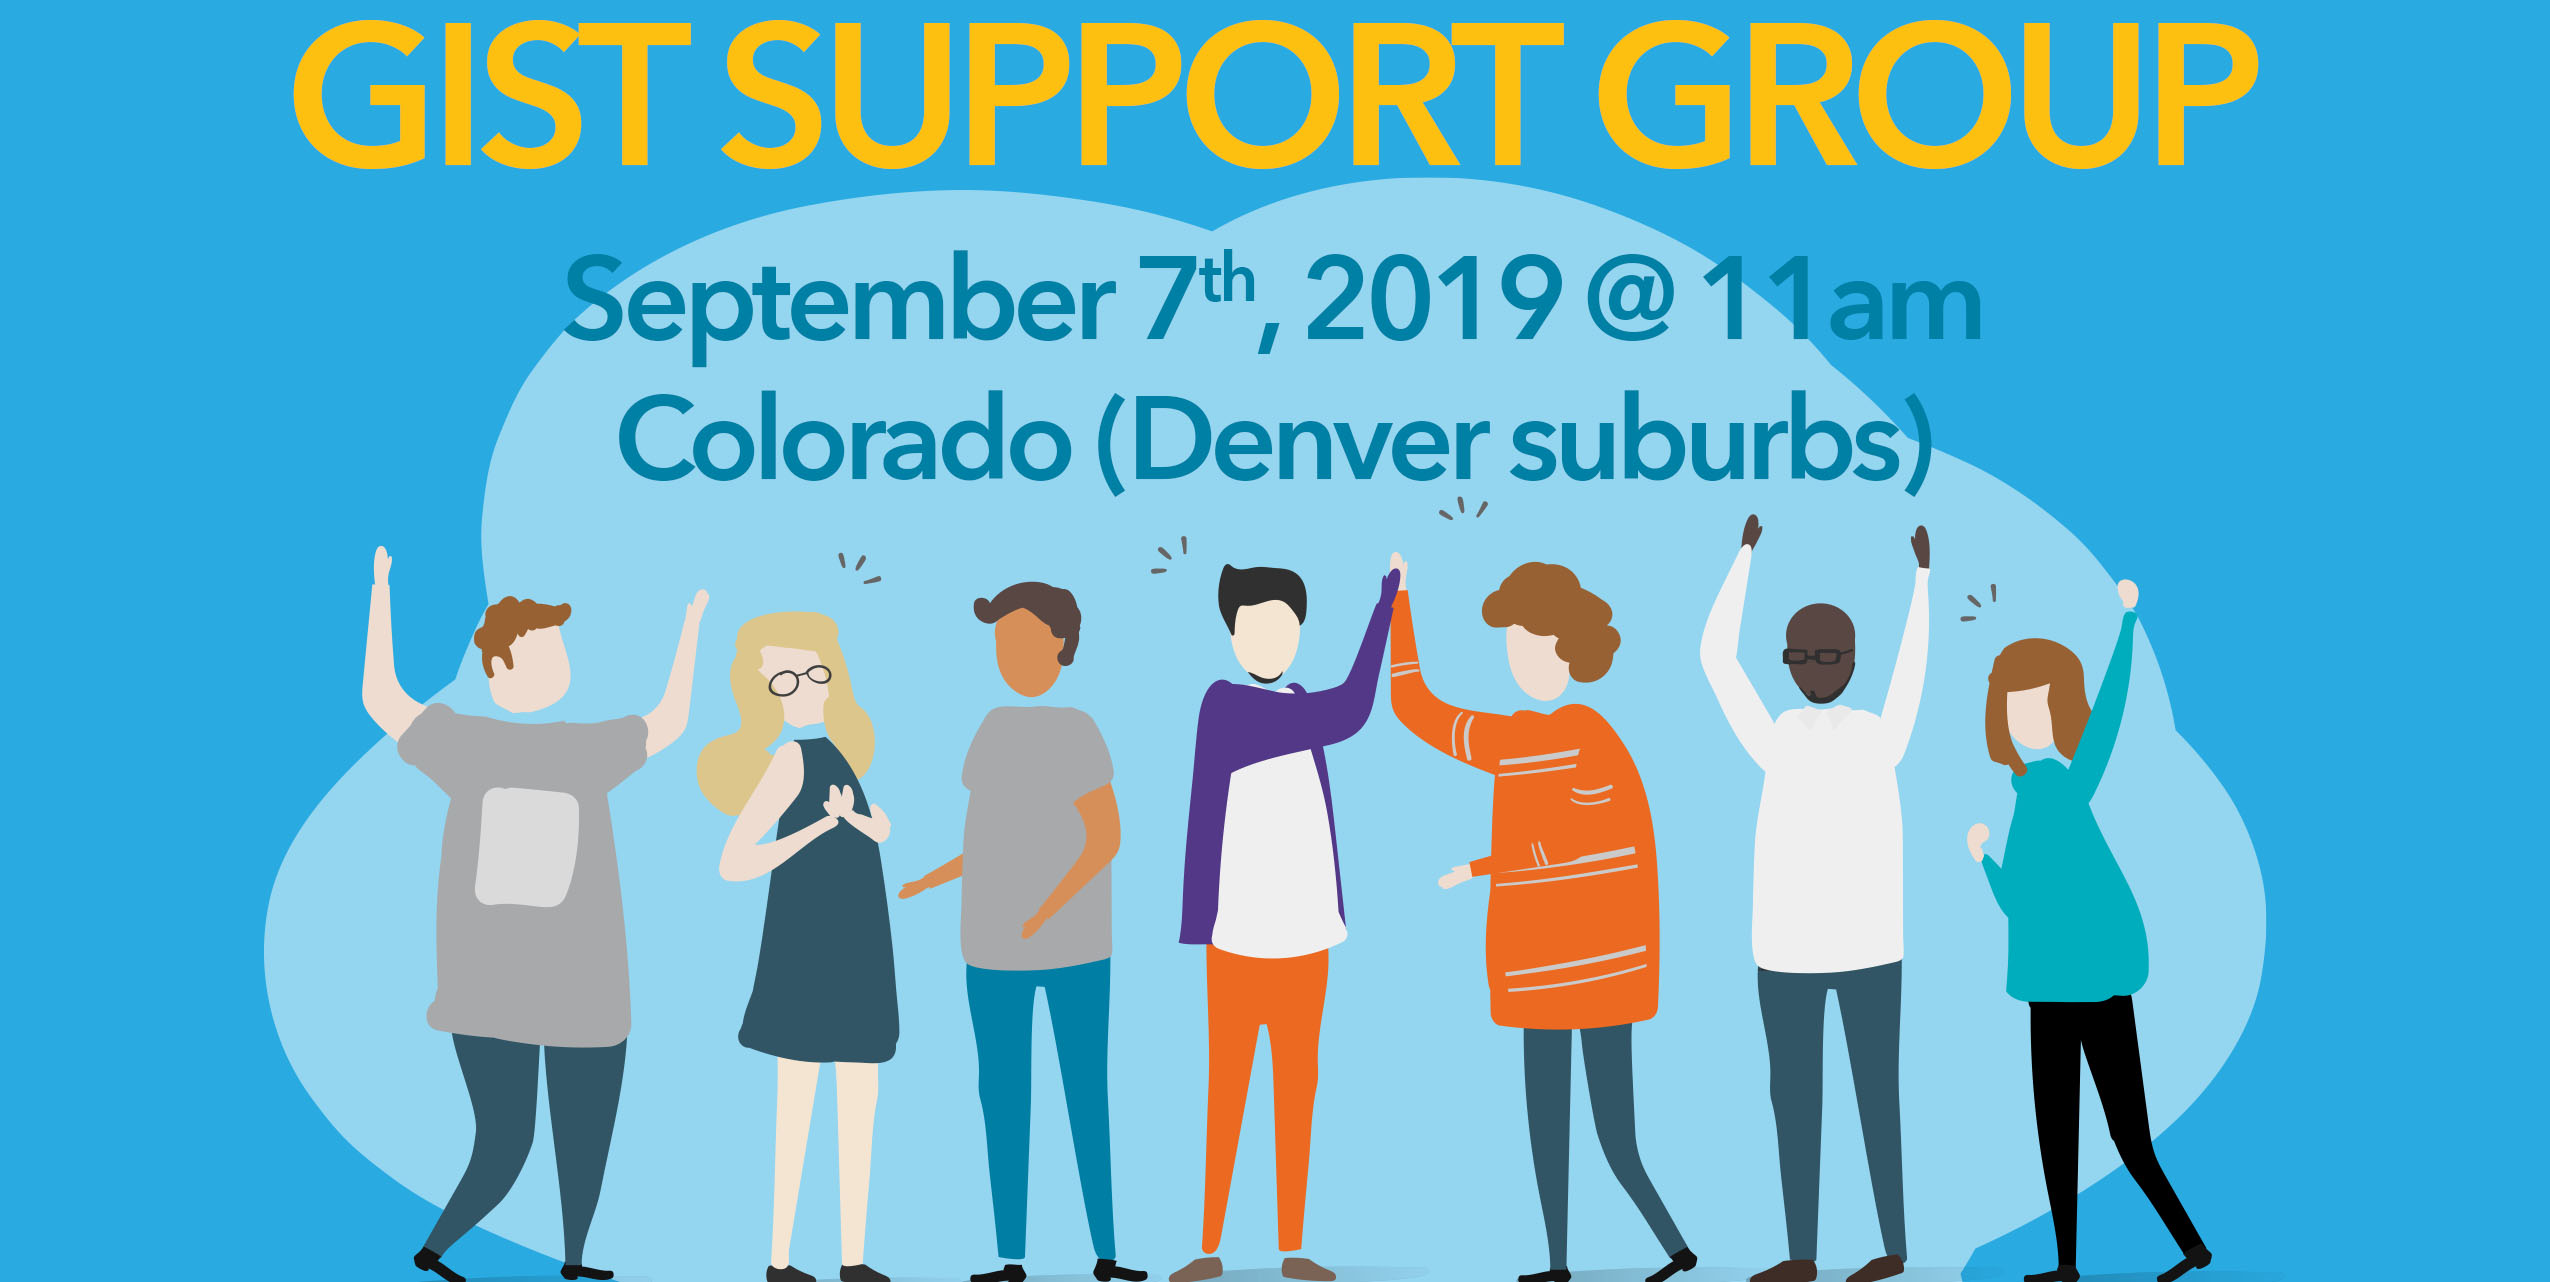 Colorado Support Group meeting Sept 7th